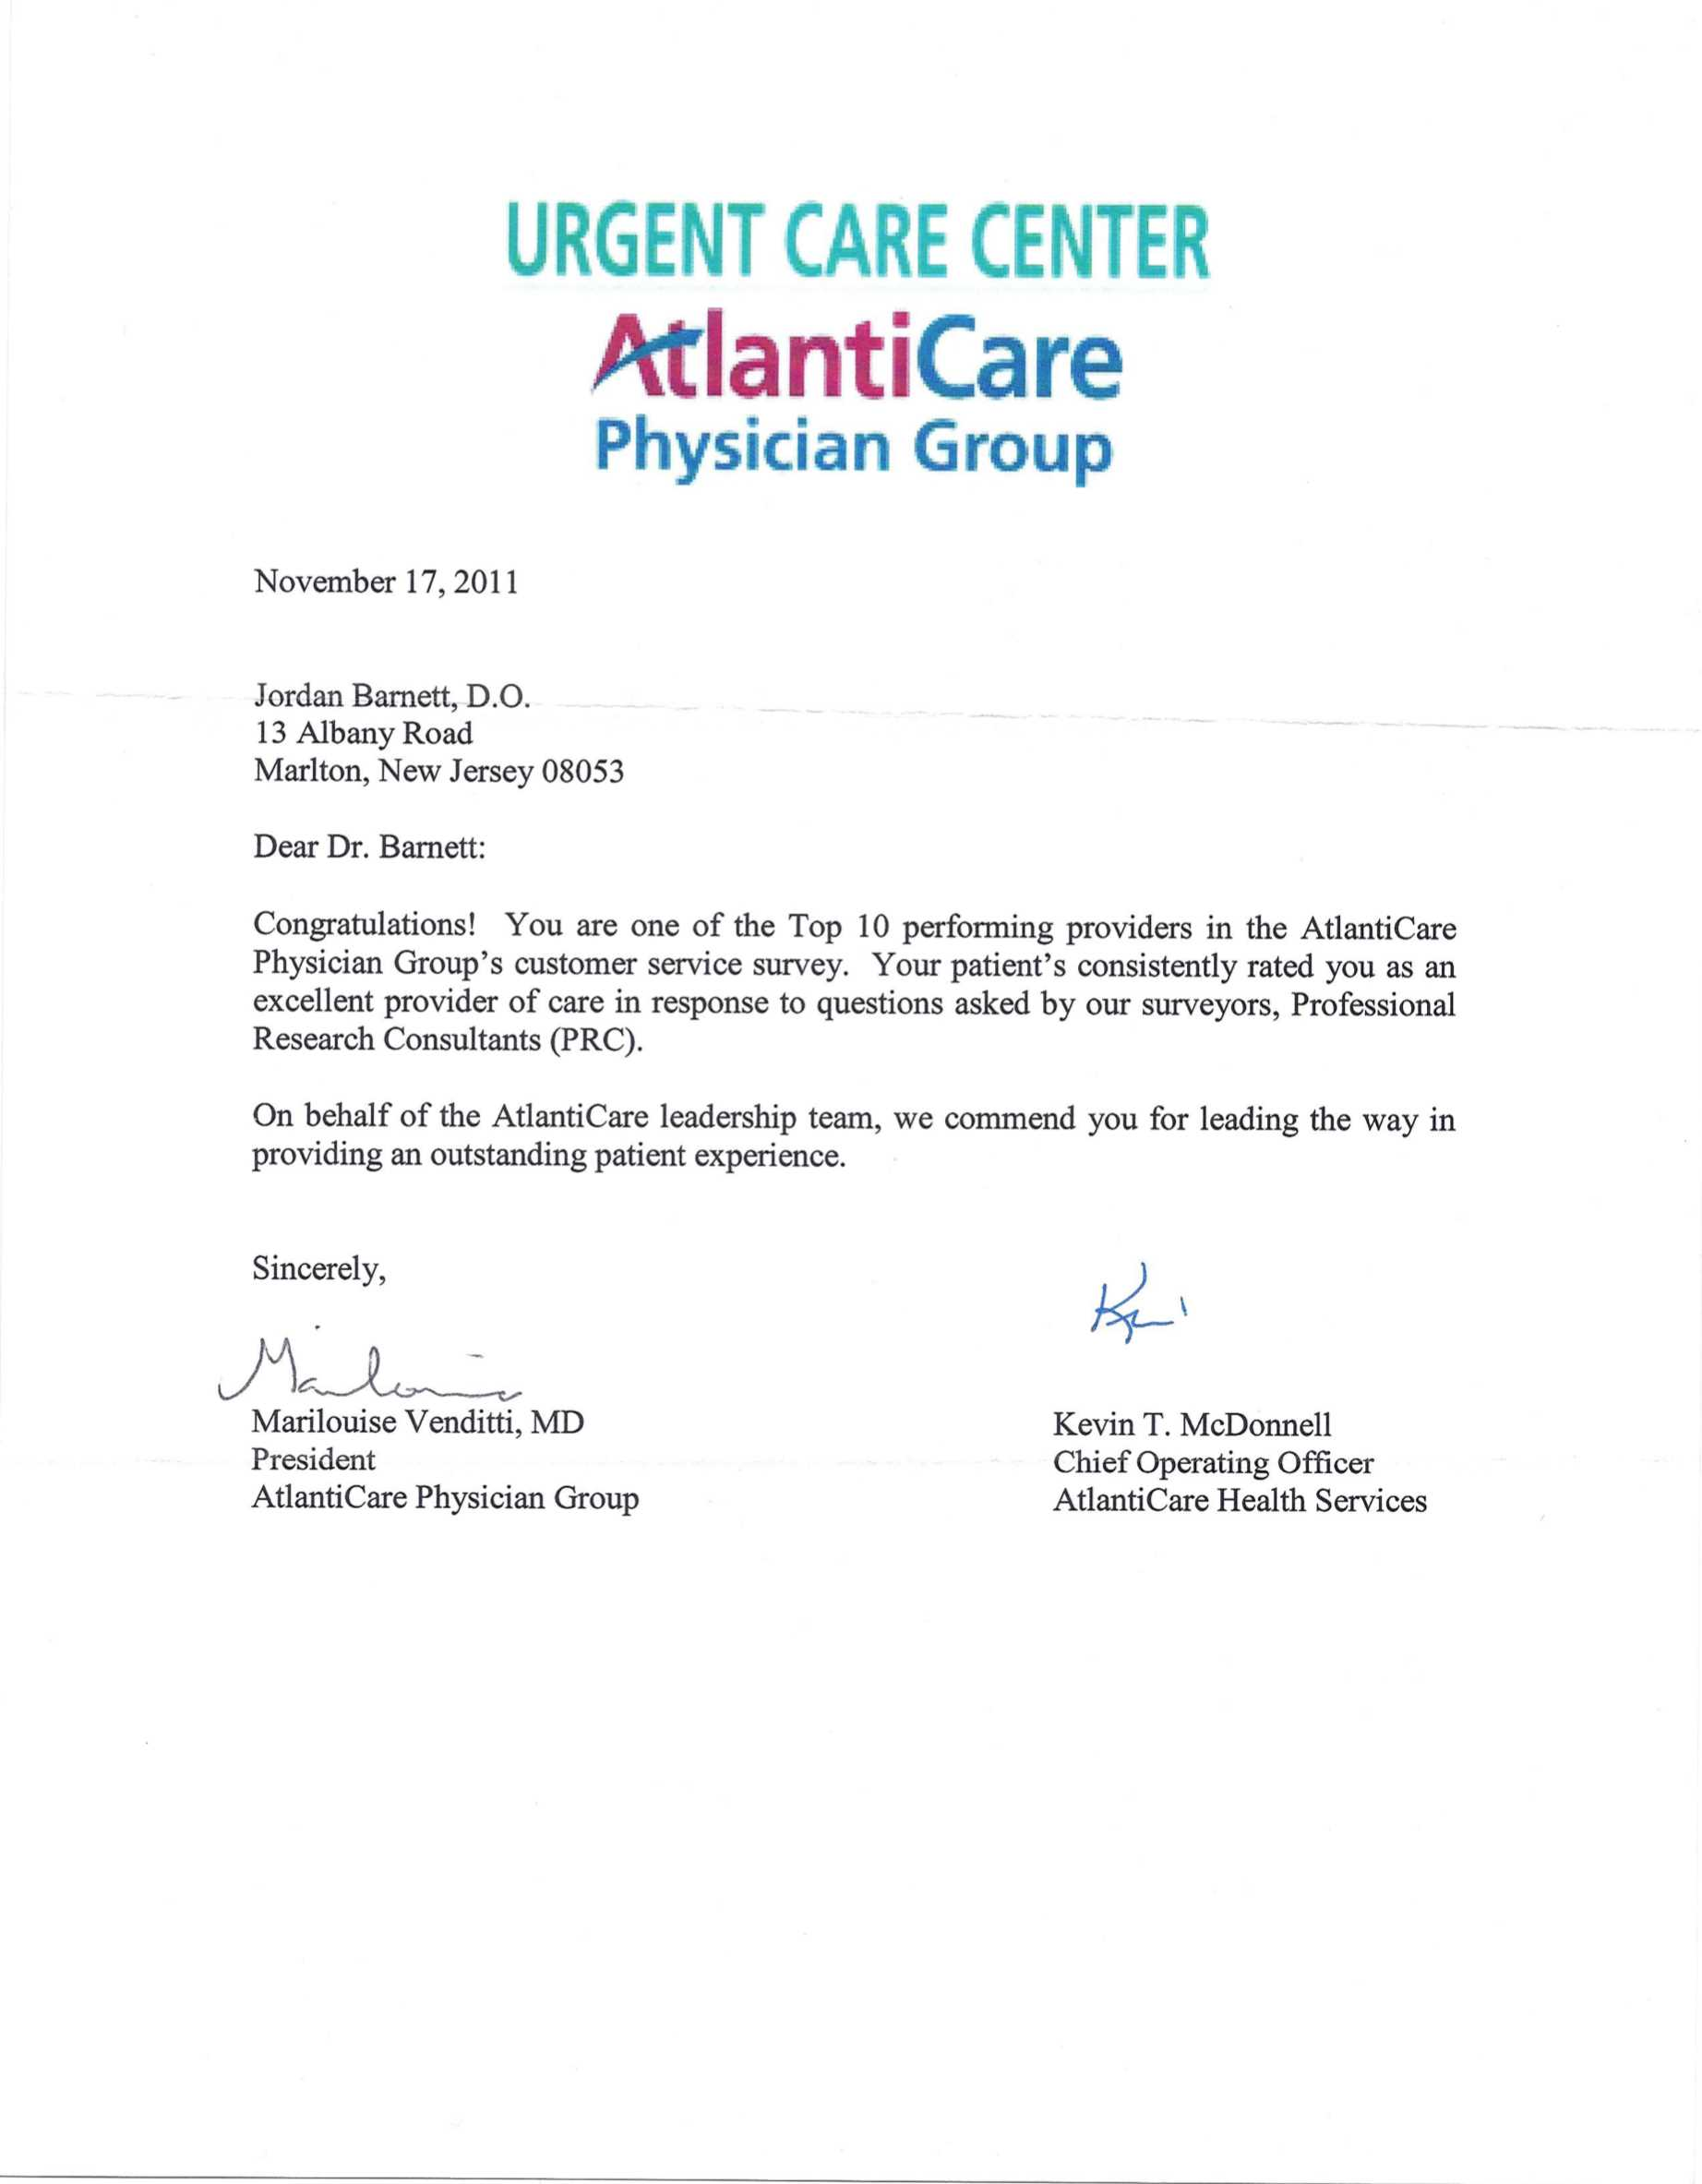 Rated one of the Top 10 Providers in the AtlantiCare Physician Group by An Independent Research Group